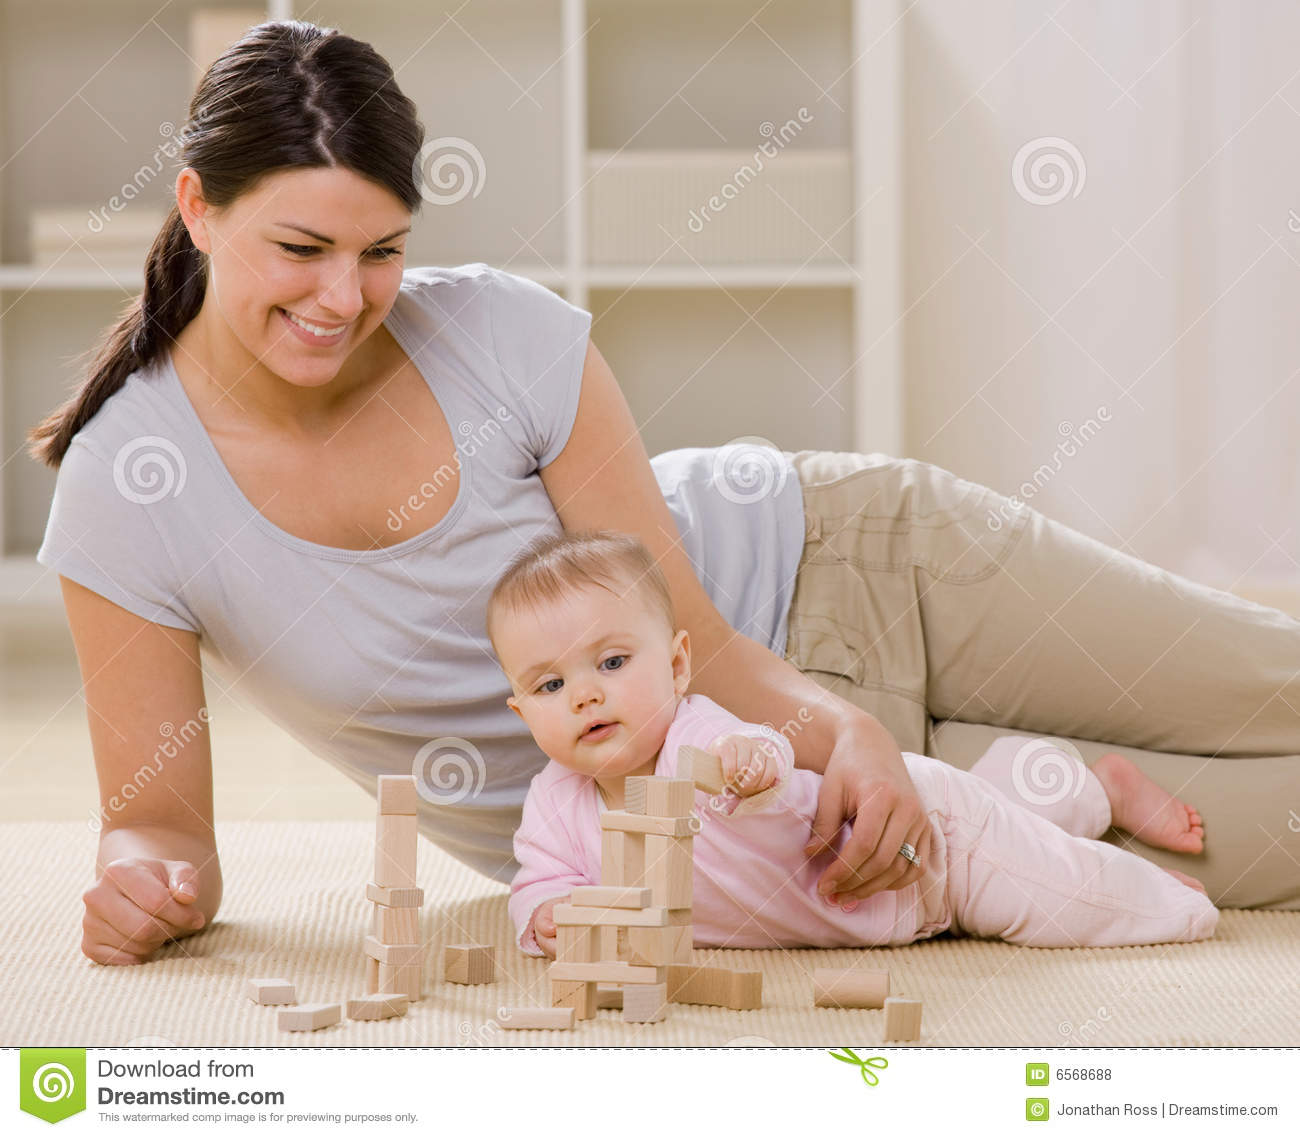 Mother and baby playing with wooden blocks